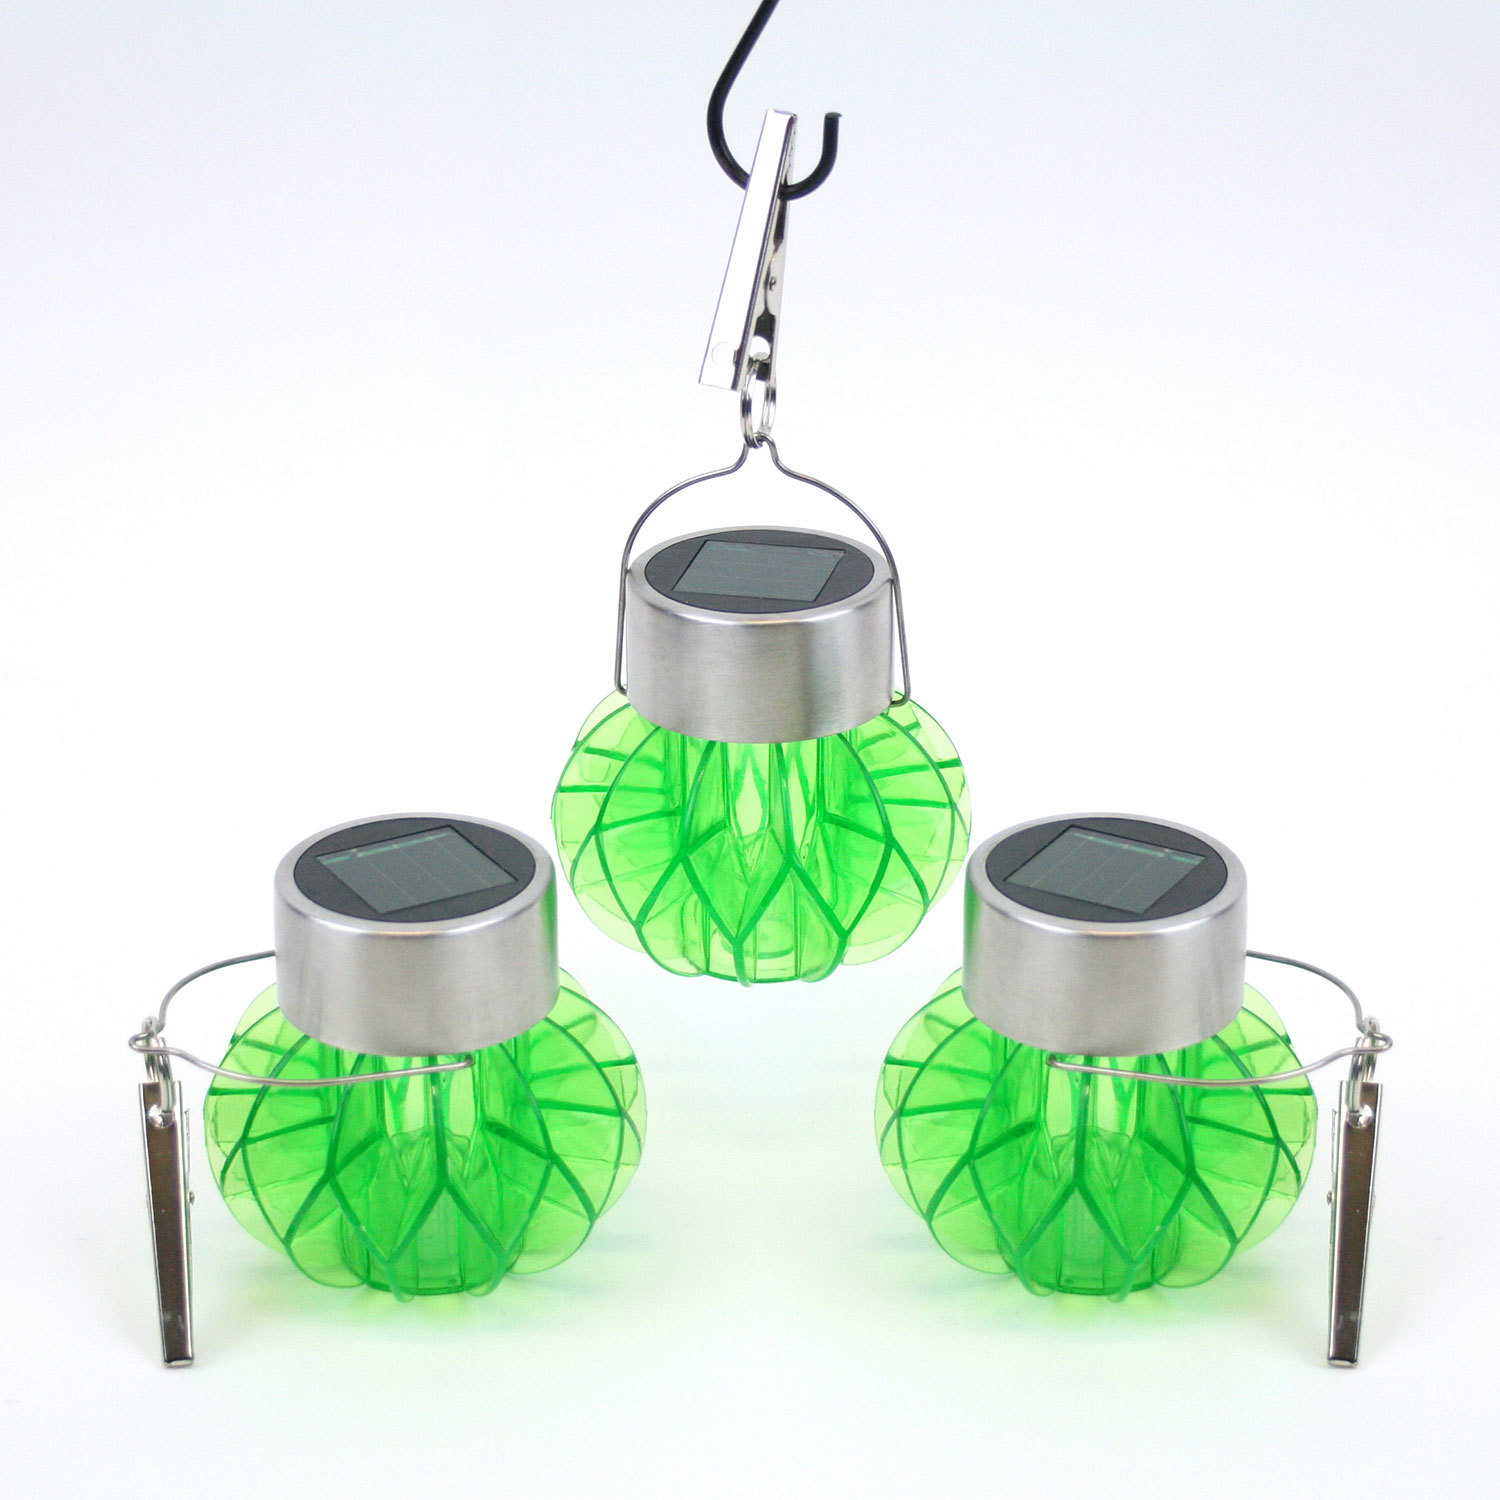 Edison Outdoor Lights picture on acrylic lime green solar hanging lanterns p 36734 with Edison Outdoor Lights, Outdoor Lighting ideas e04e402ad3e0d0fde7fe7d1eaa374272